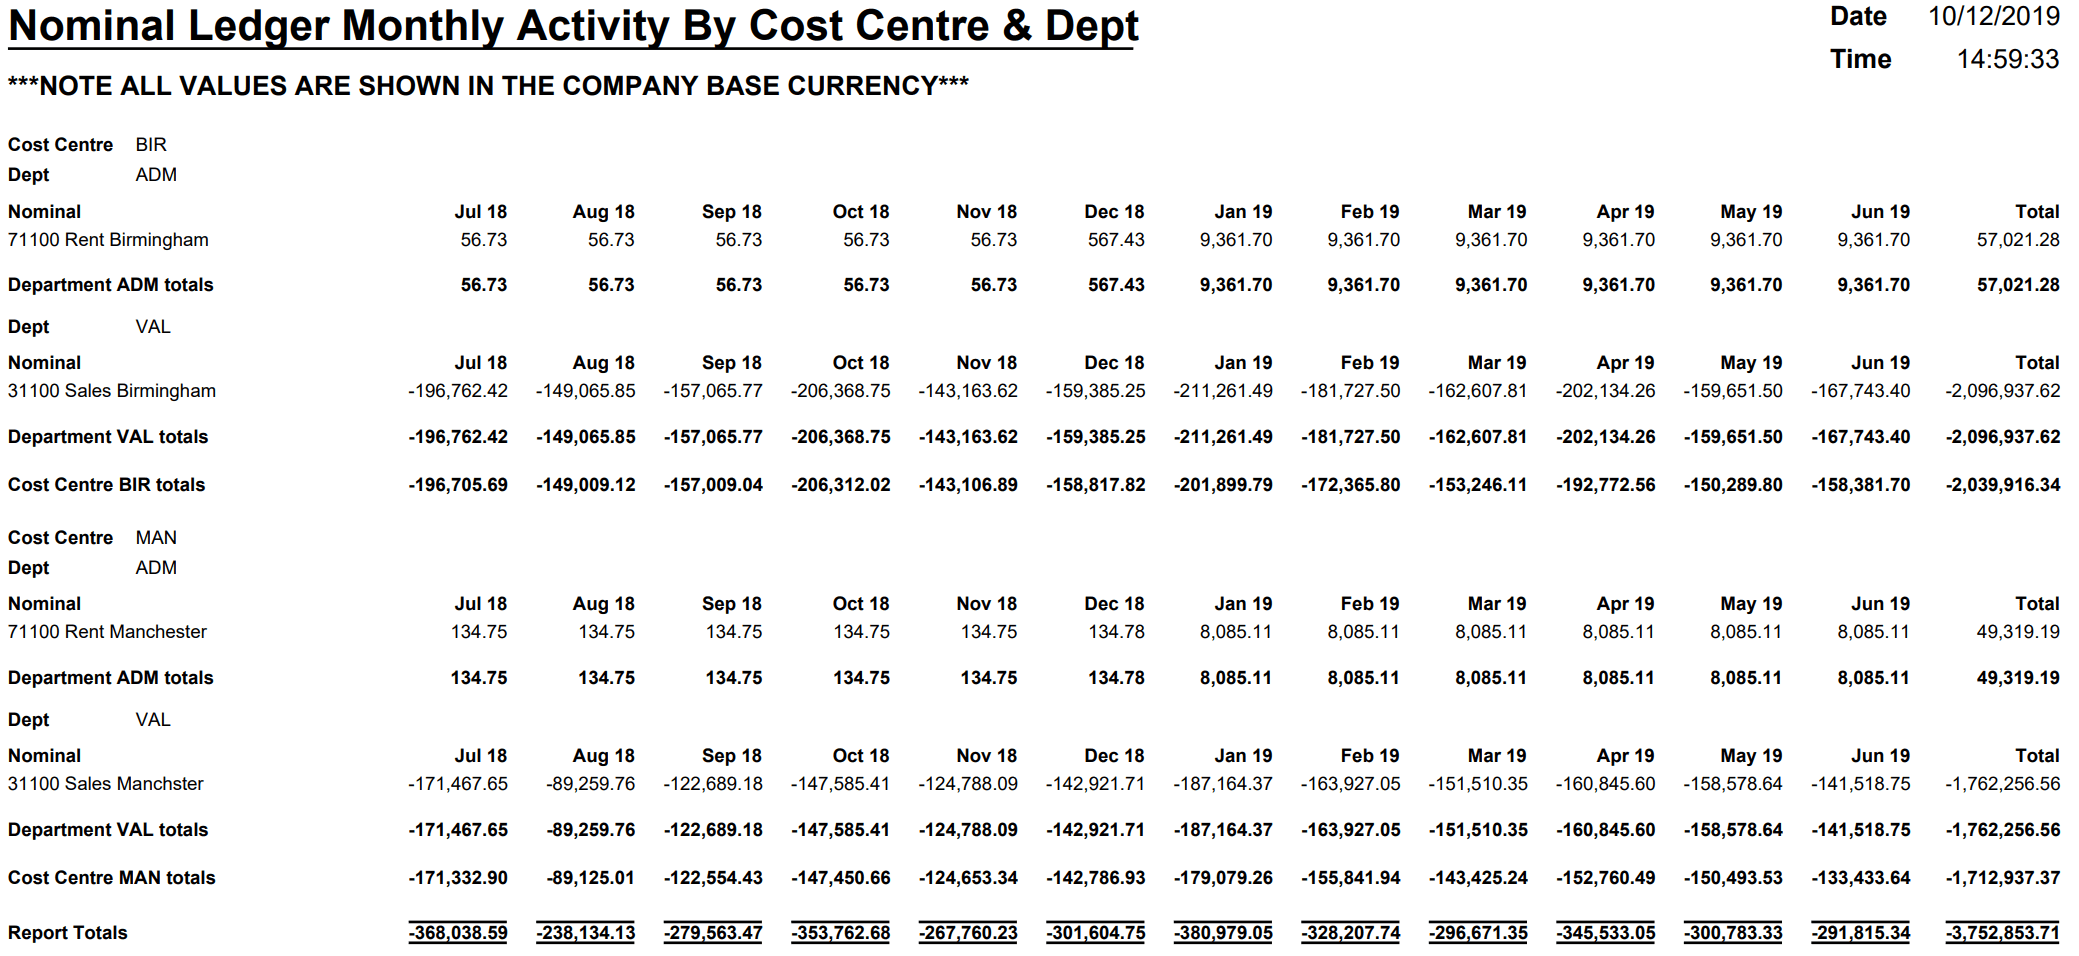 Nominal Ledger Monthly Activity By Cost Centre & Dept